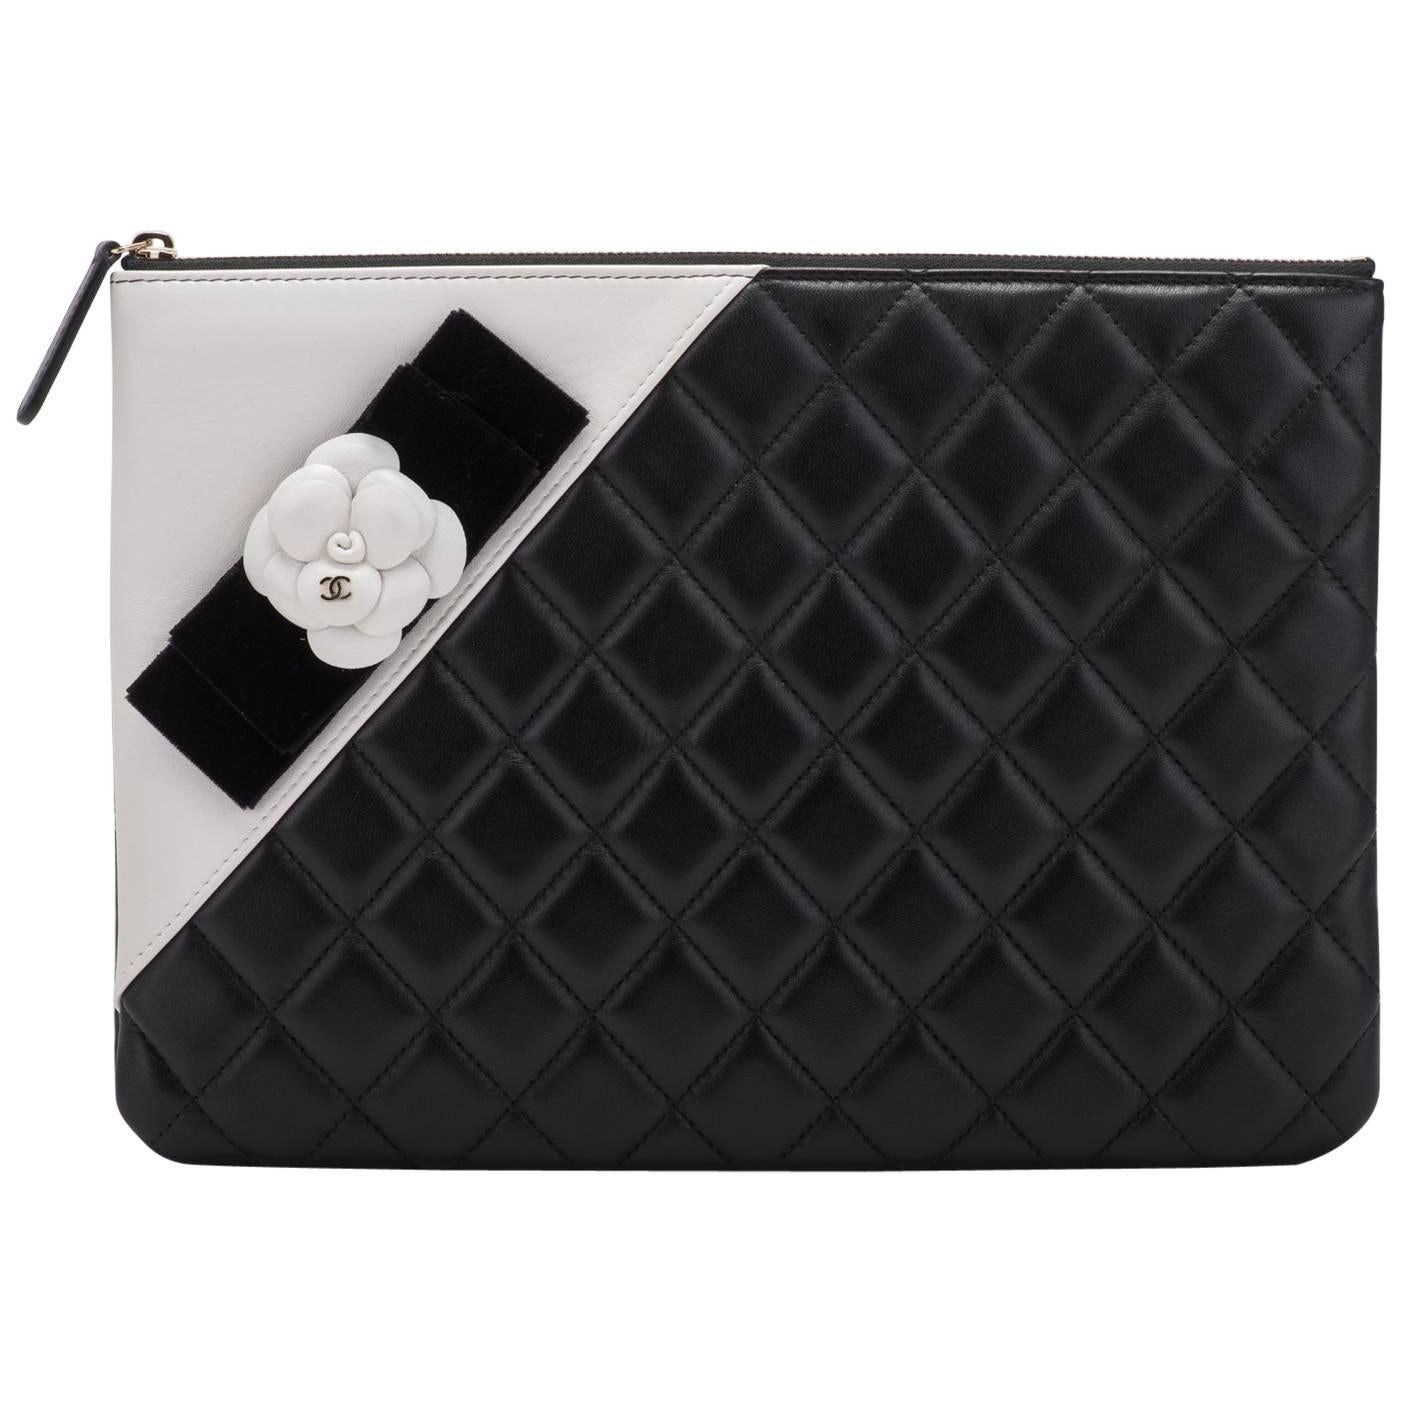 New Chanel Black and White Camellia Clutch Bag